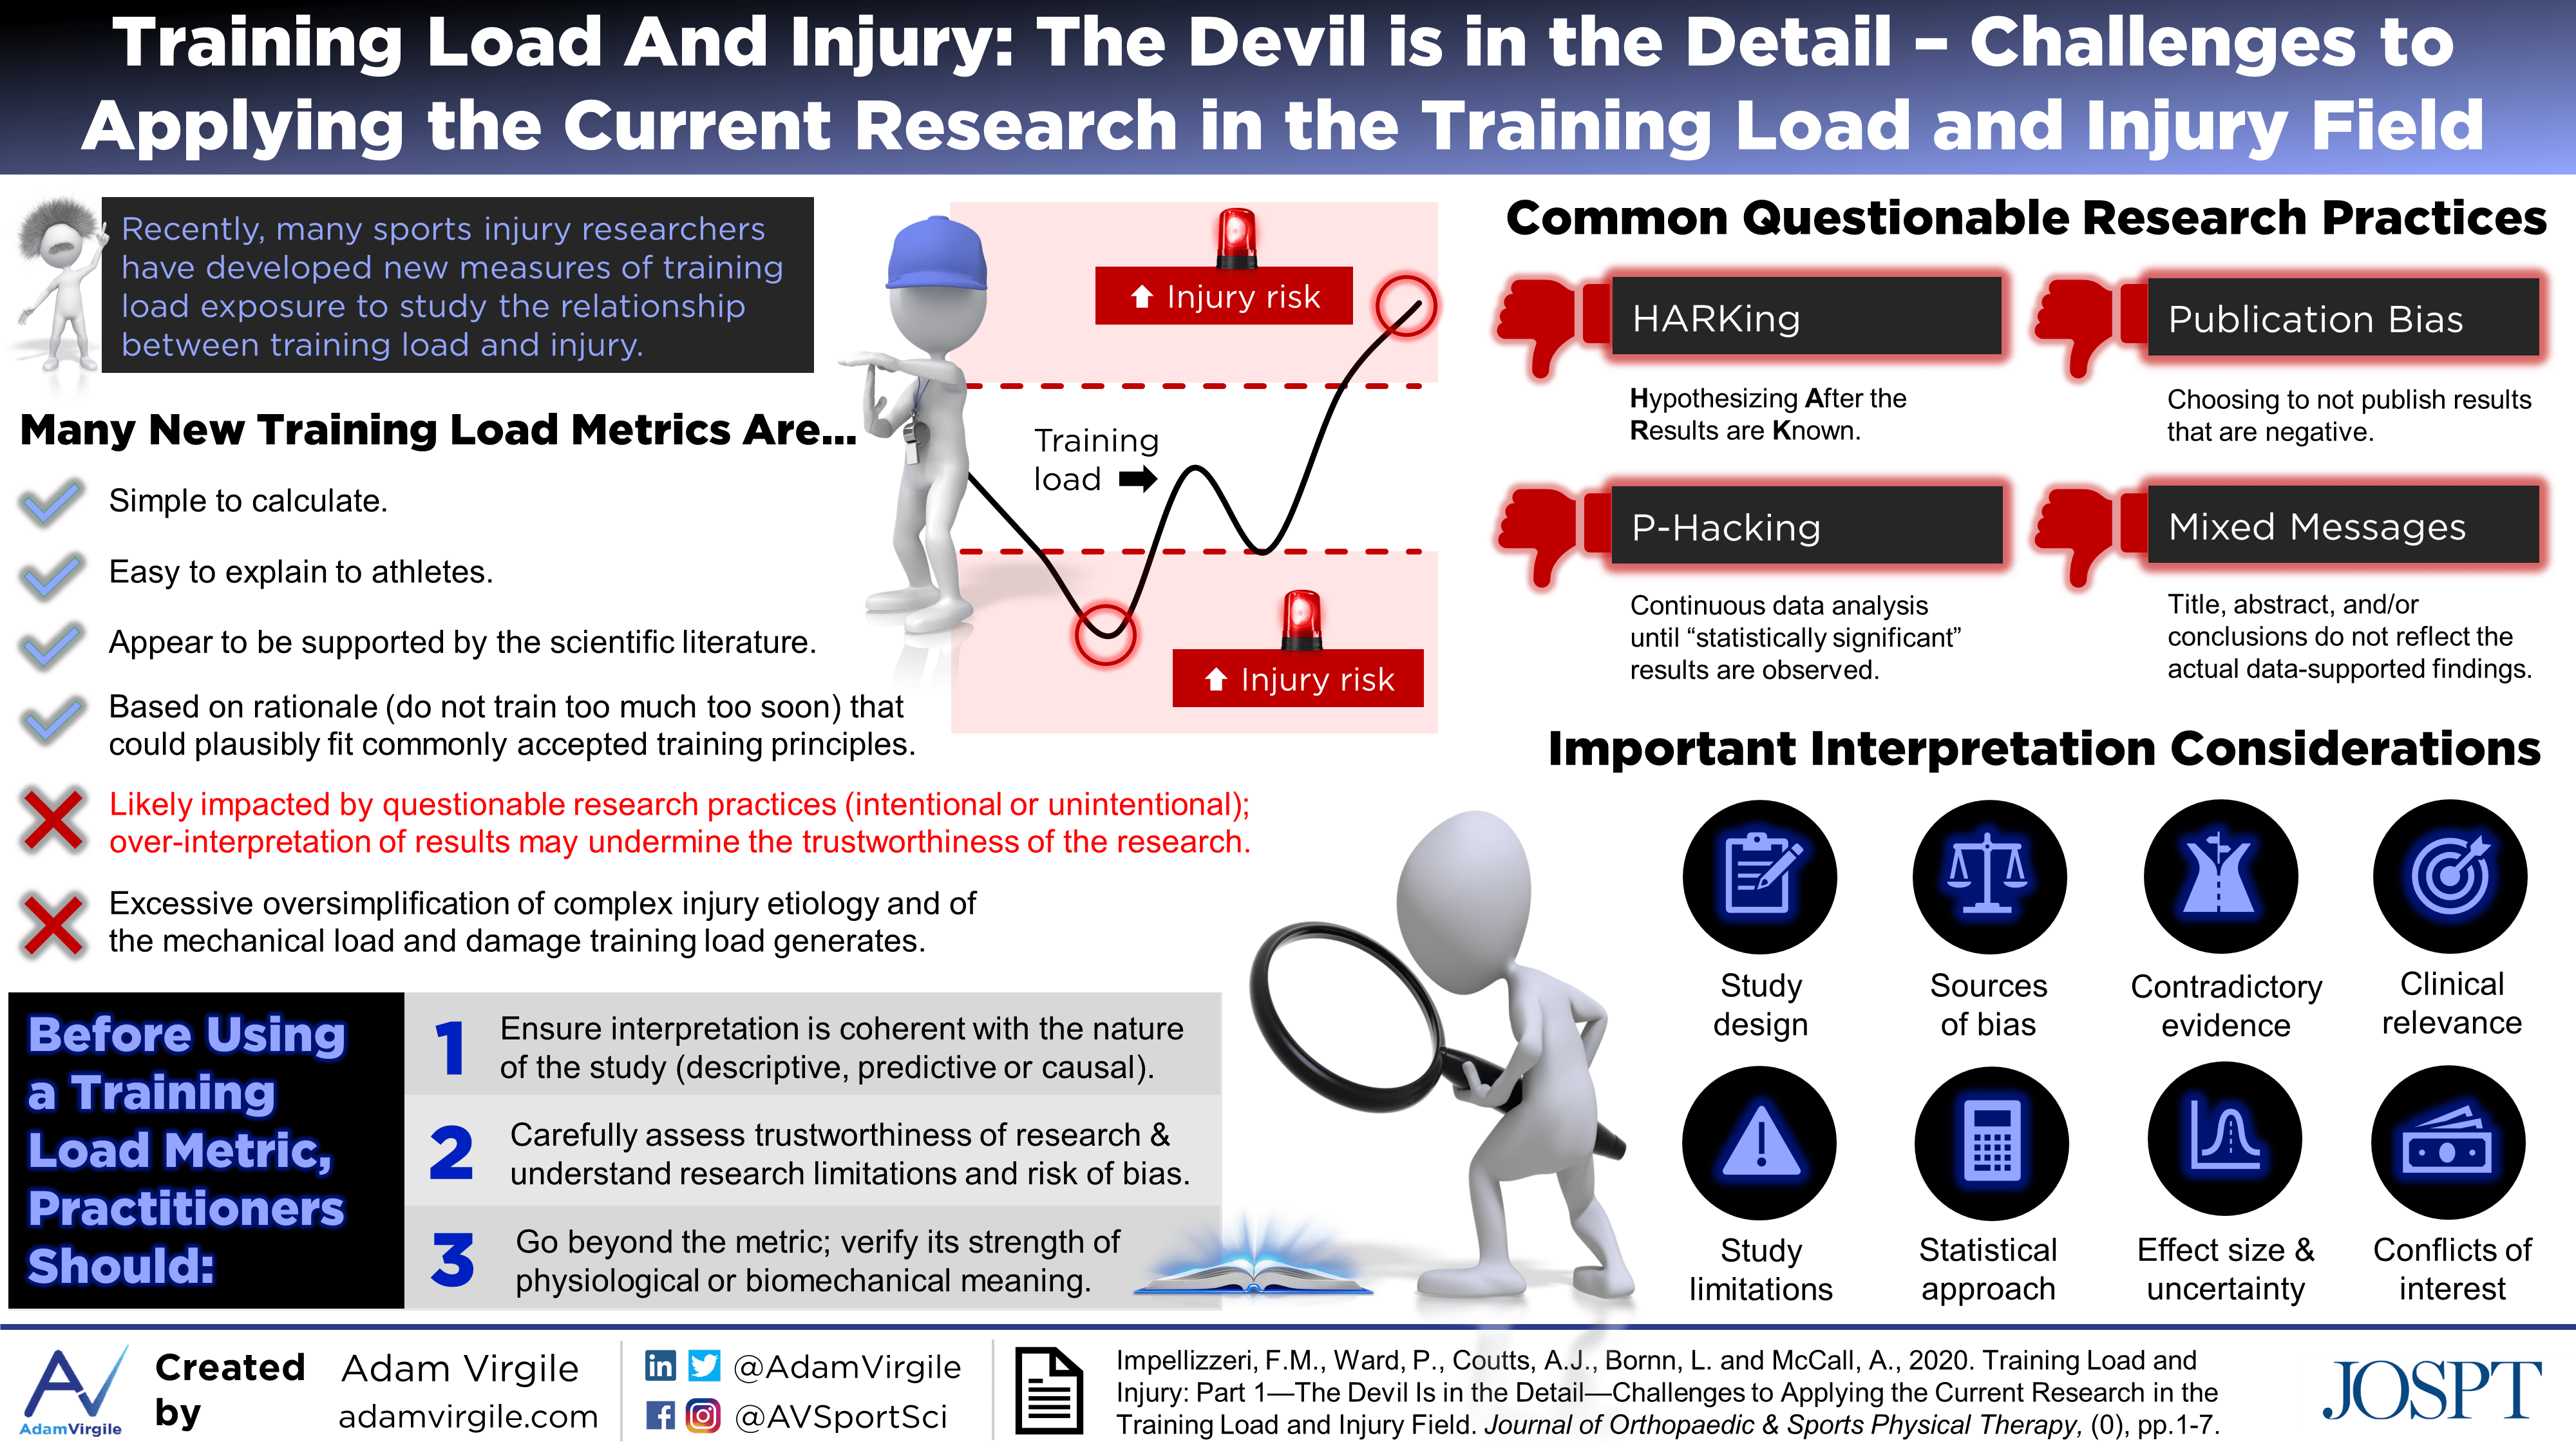 Training Load And Injury: The Devil is in the Detail – Challenges to Applying the Current Research in the Training Load and Injury Field